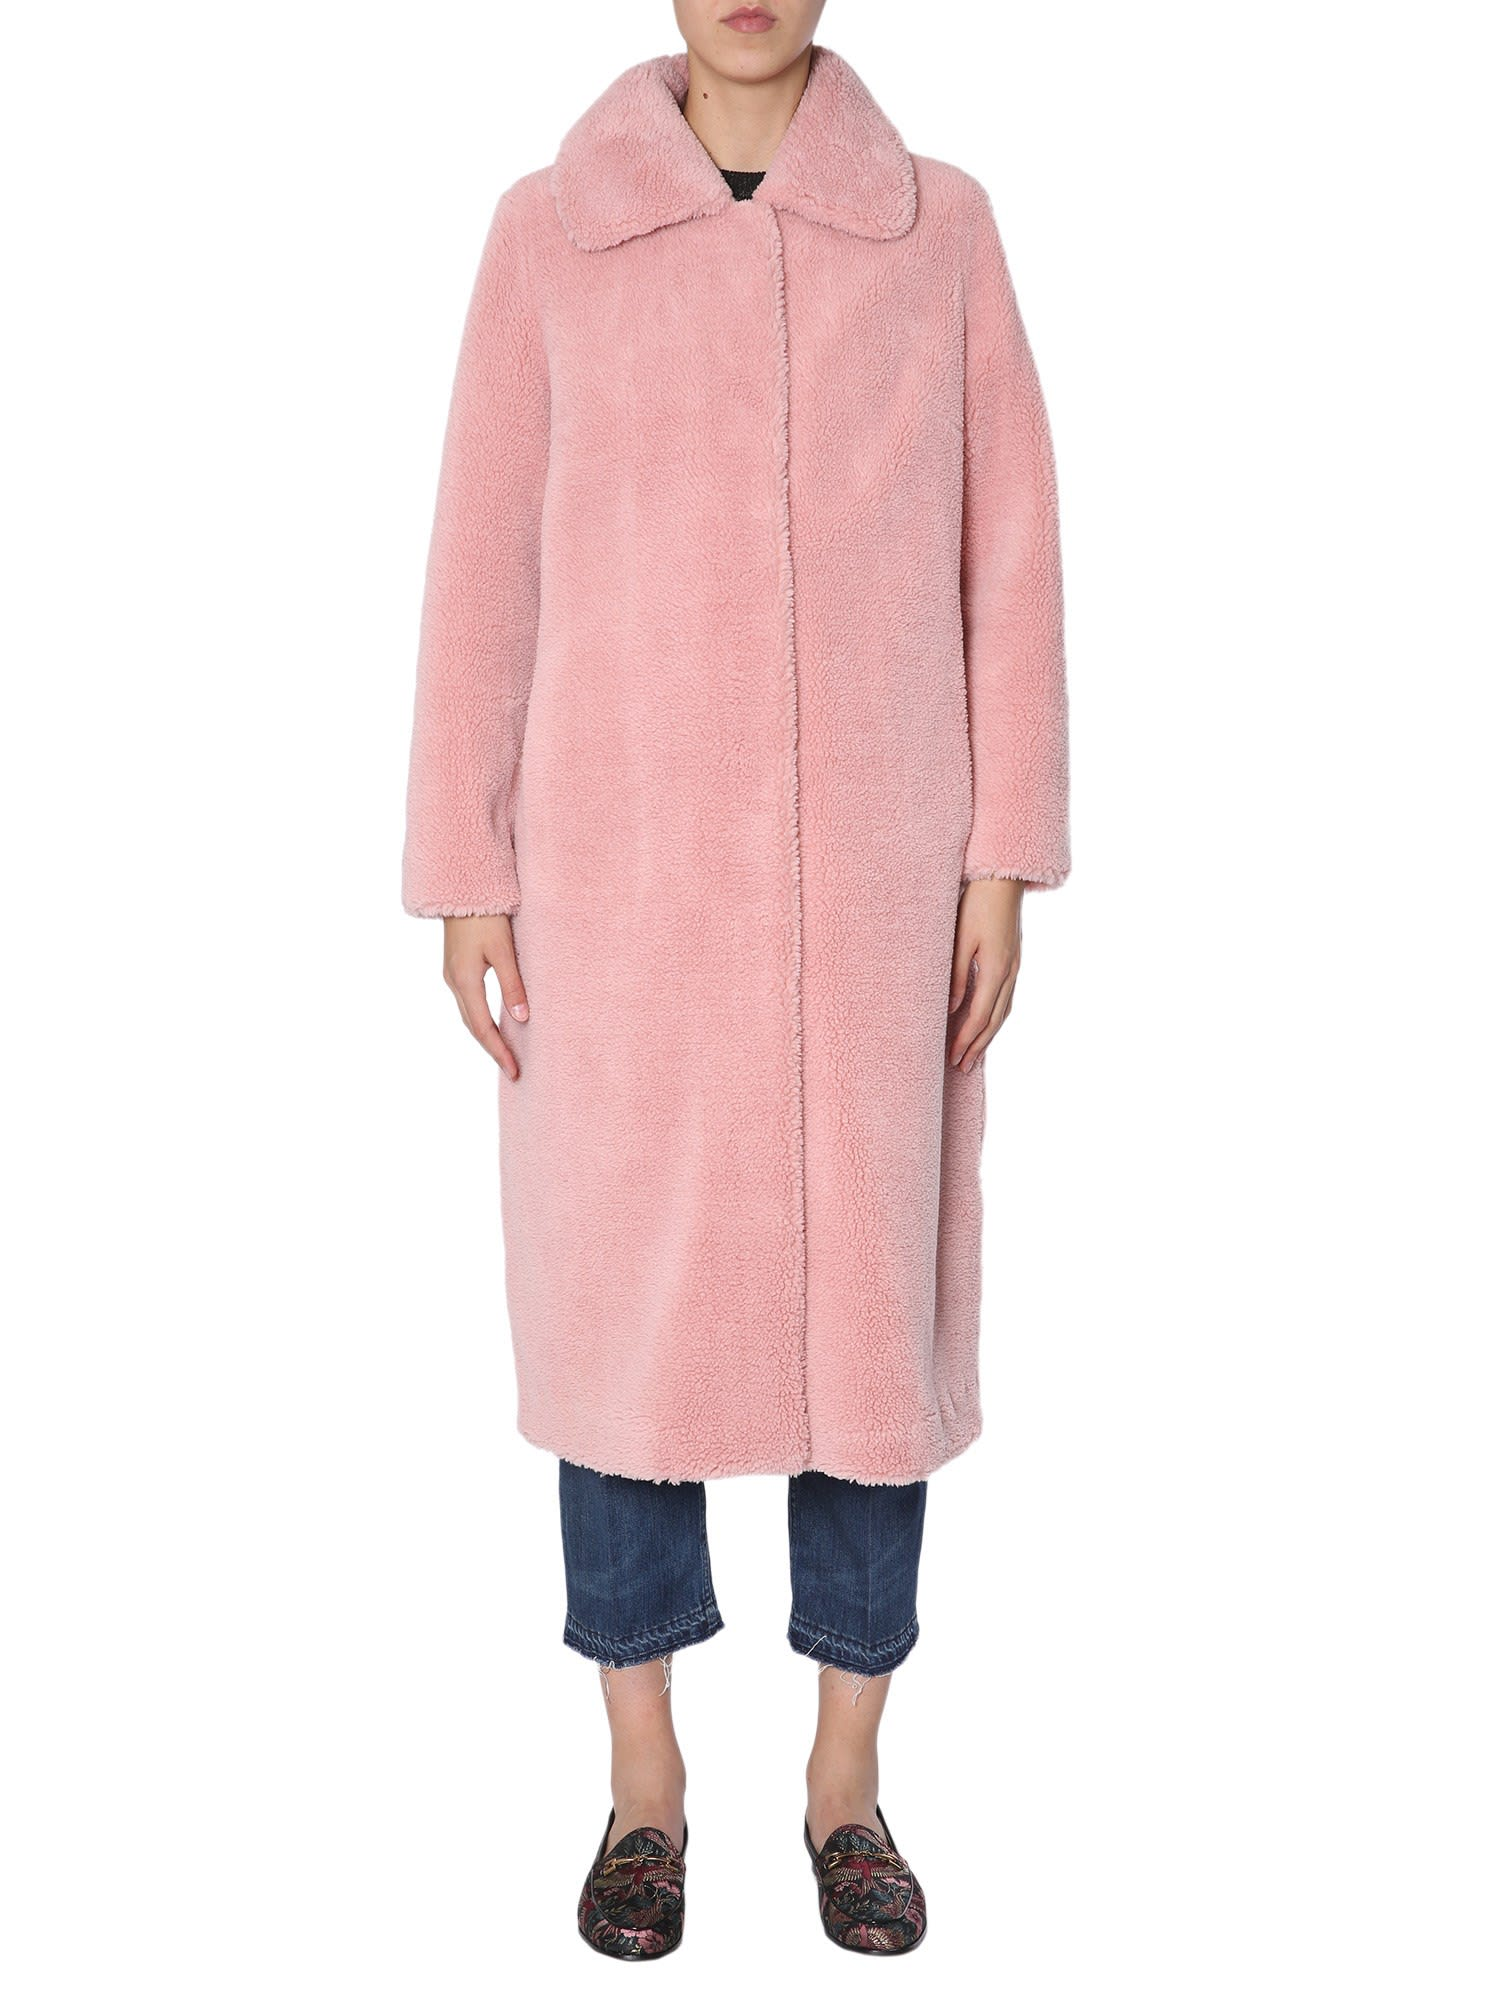 STAND STUDIO Gilberte Coat